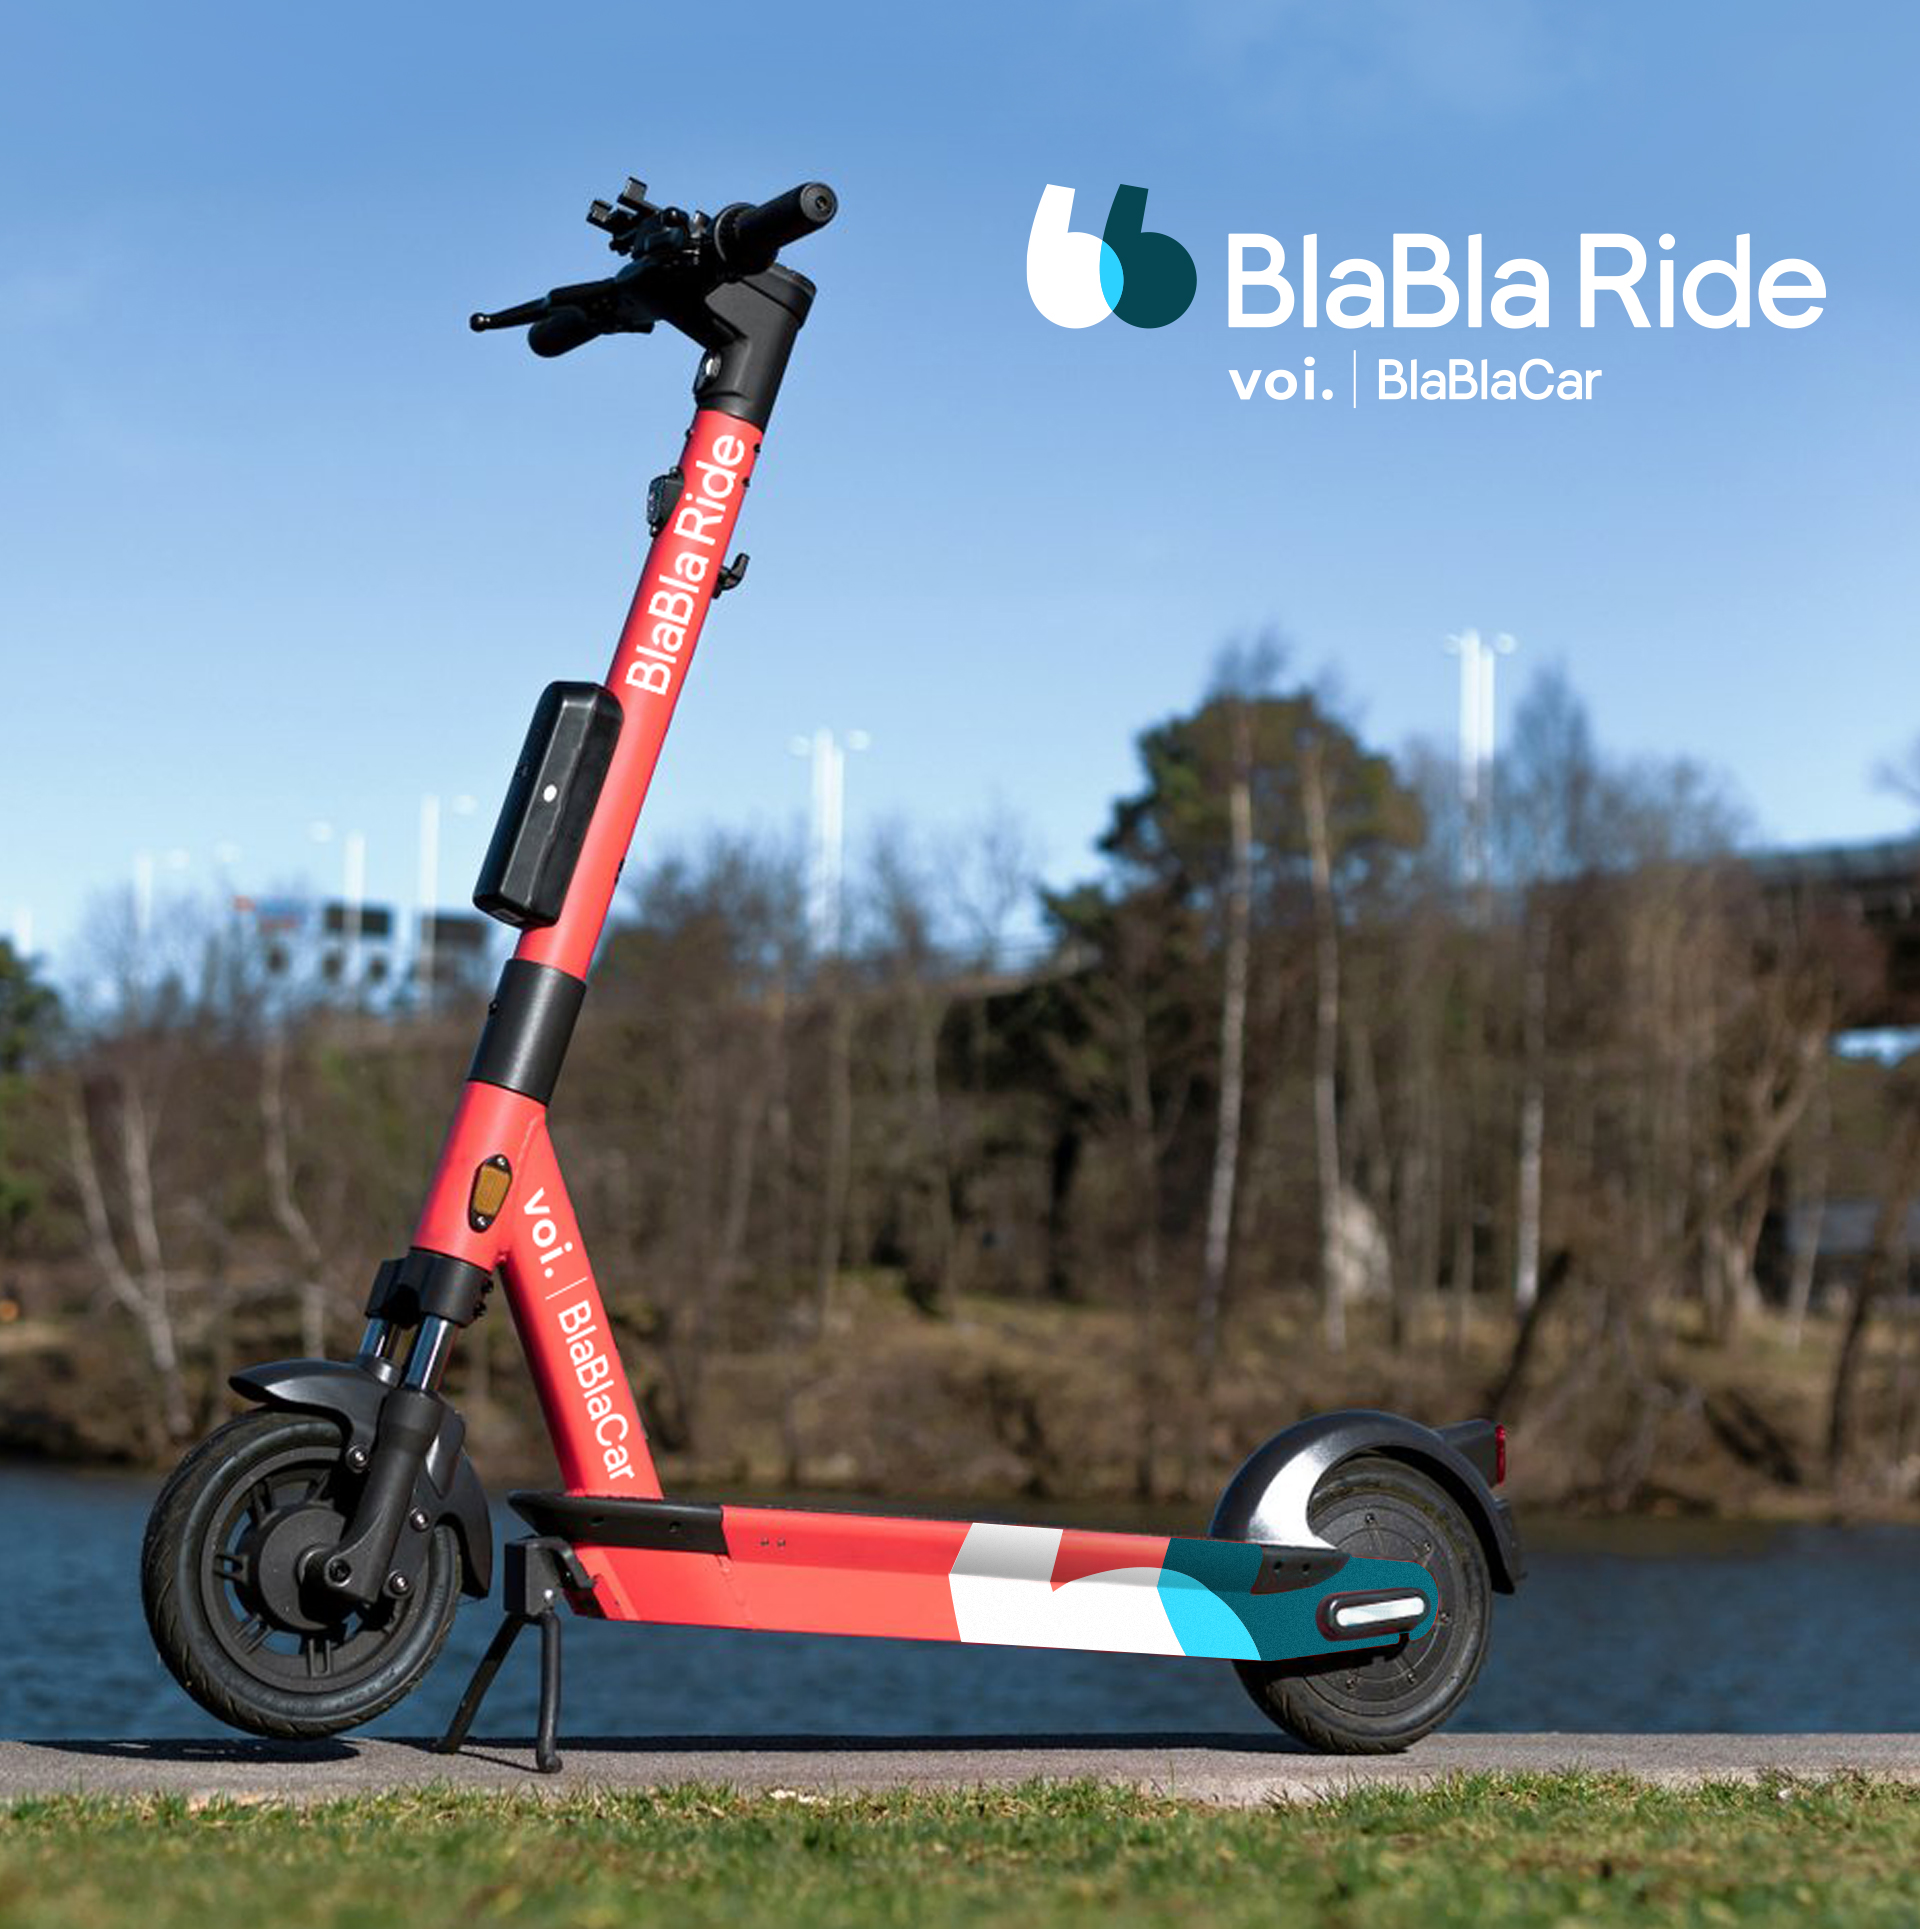 BlaBlaCar partners with scooter startup Voi to launch new BlaBla Ride app